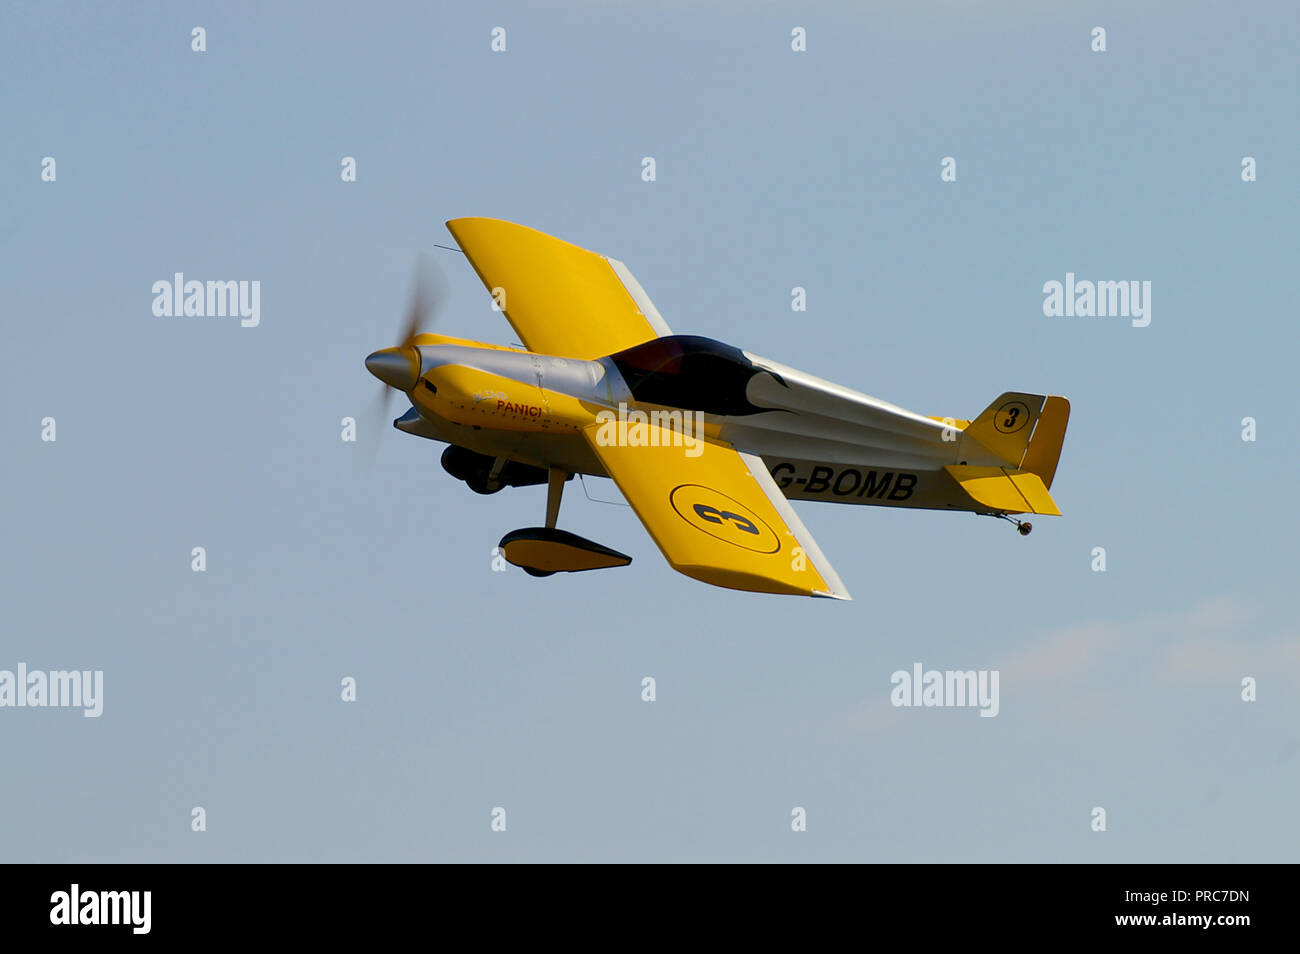 Ford Cassutt Racer IIIM G-BOMB racing plane displayed by Richard Grace as part of the Dukes of Cassutt display team flying in blue sky - Stock Image